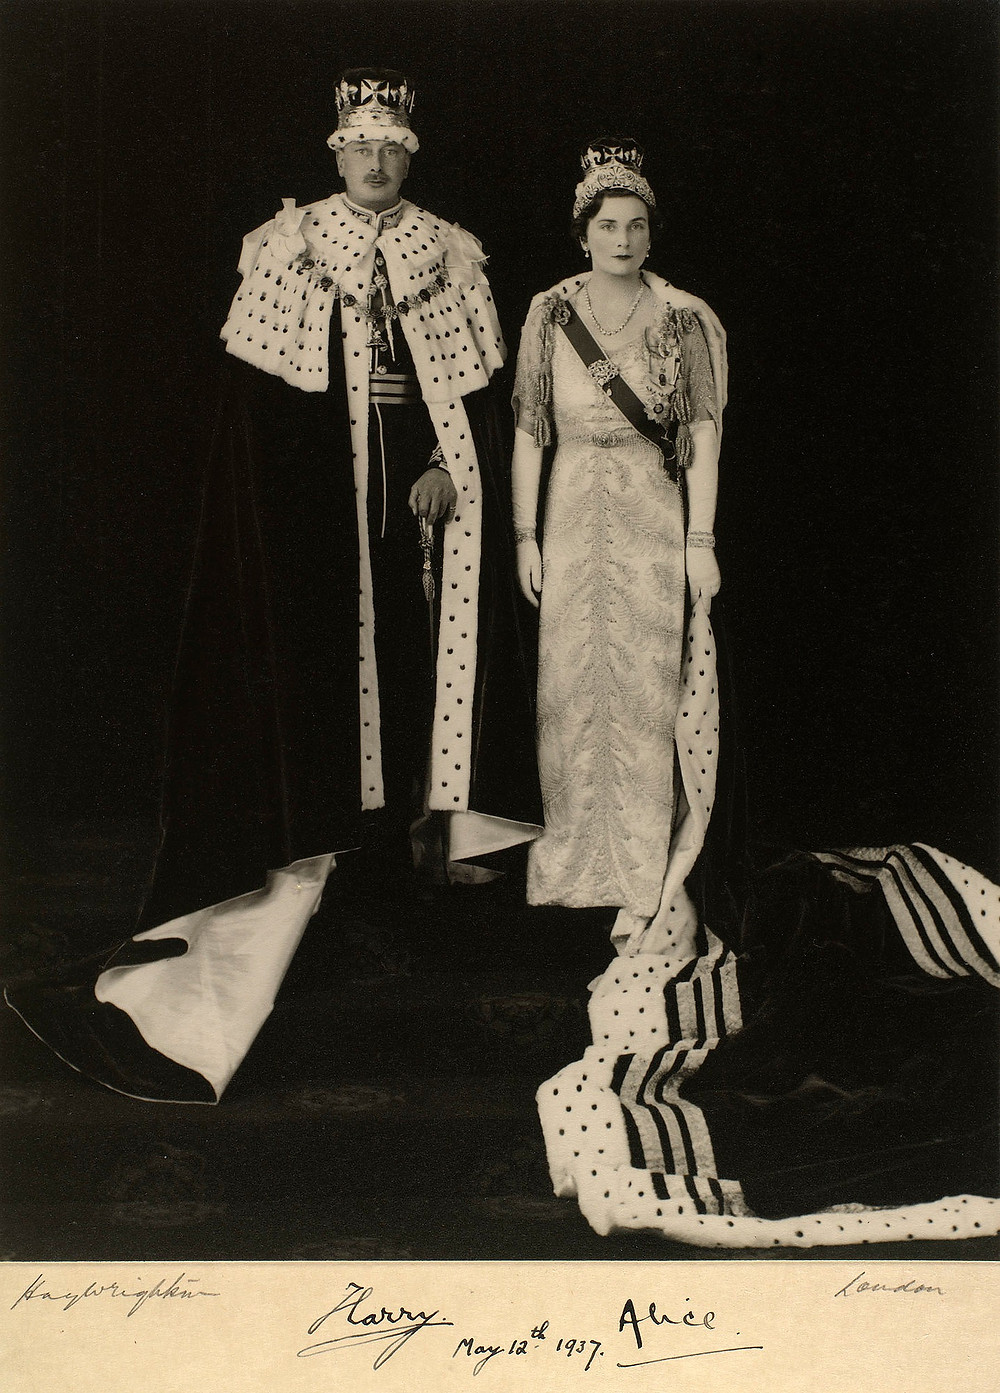 The Duke & Duchess of Gloucester, 1937, dressed for the Coronation of George VI & Queen Elizabeth